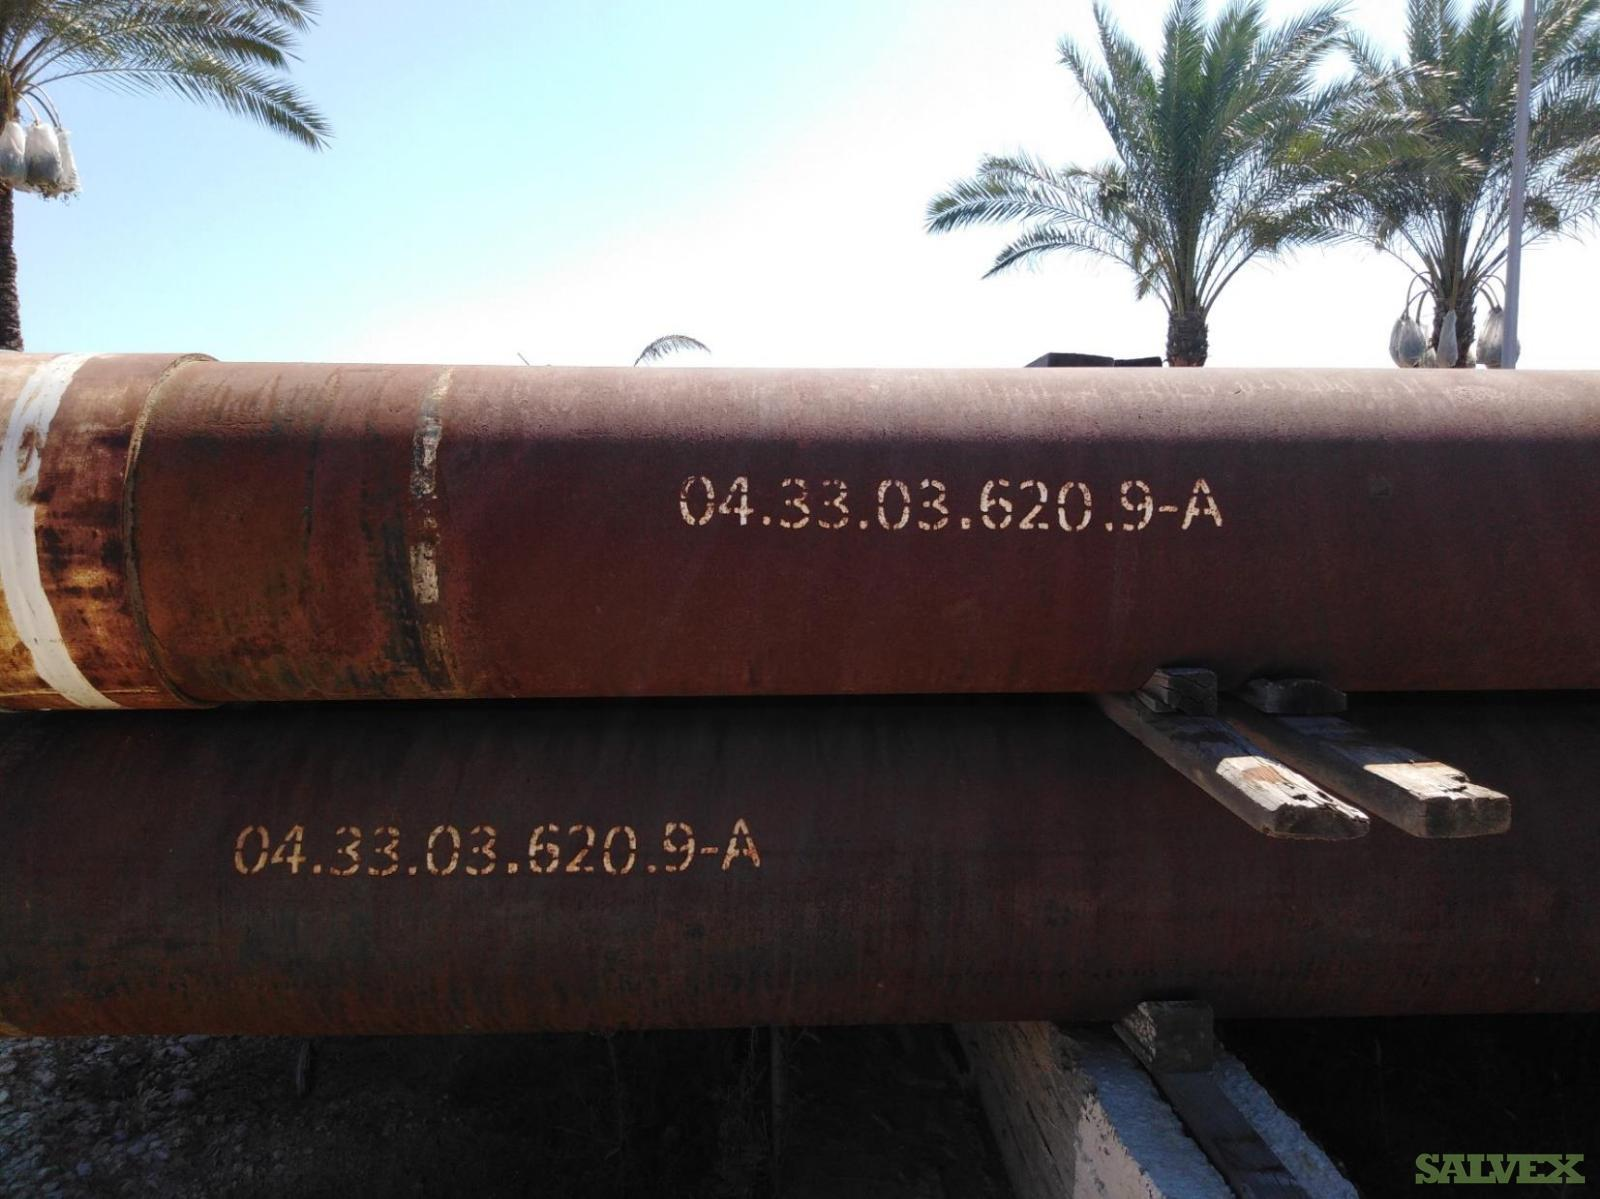 20 133# P110  BTC R3 Surplus Casing (1,280 Feet / 77 Metric Tons)